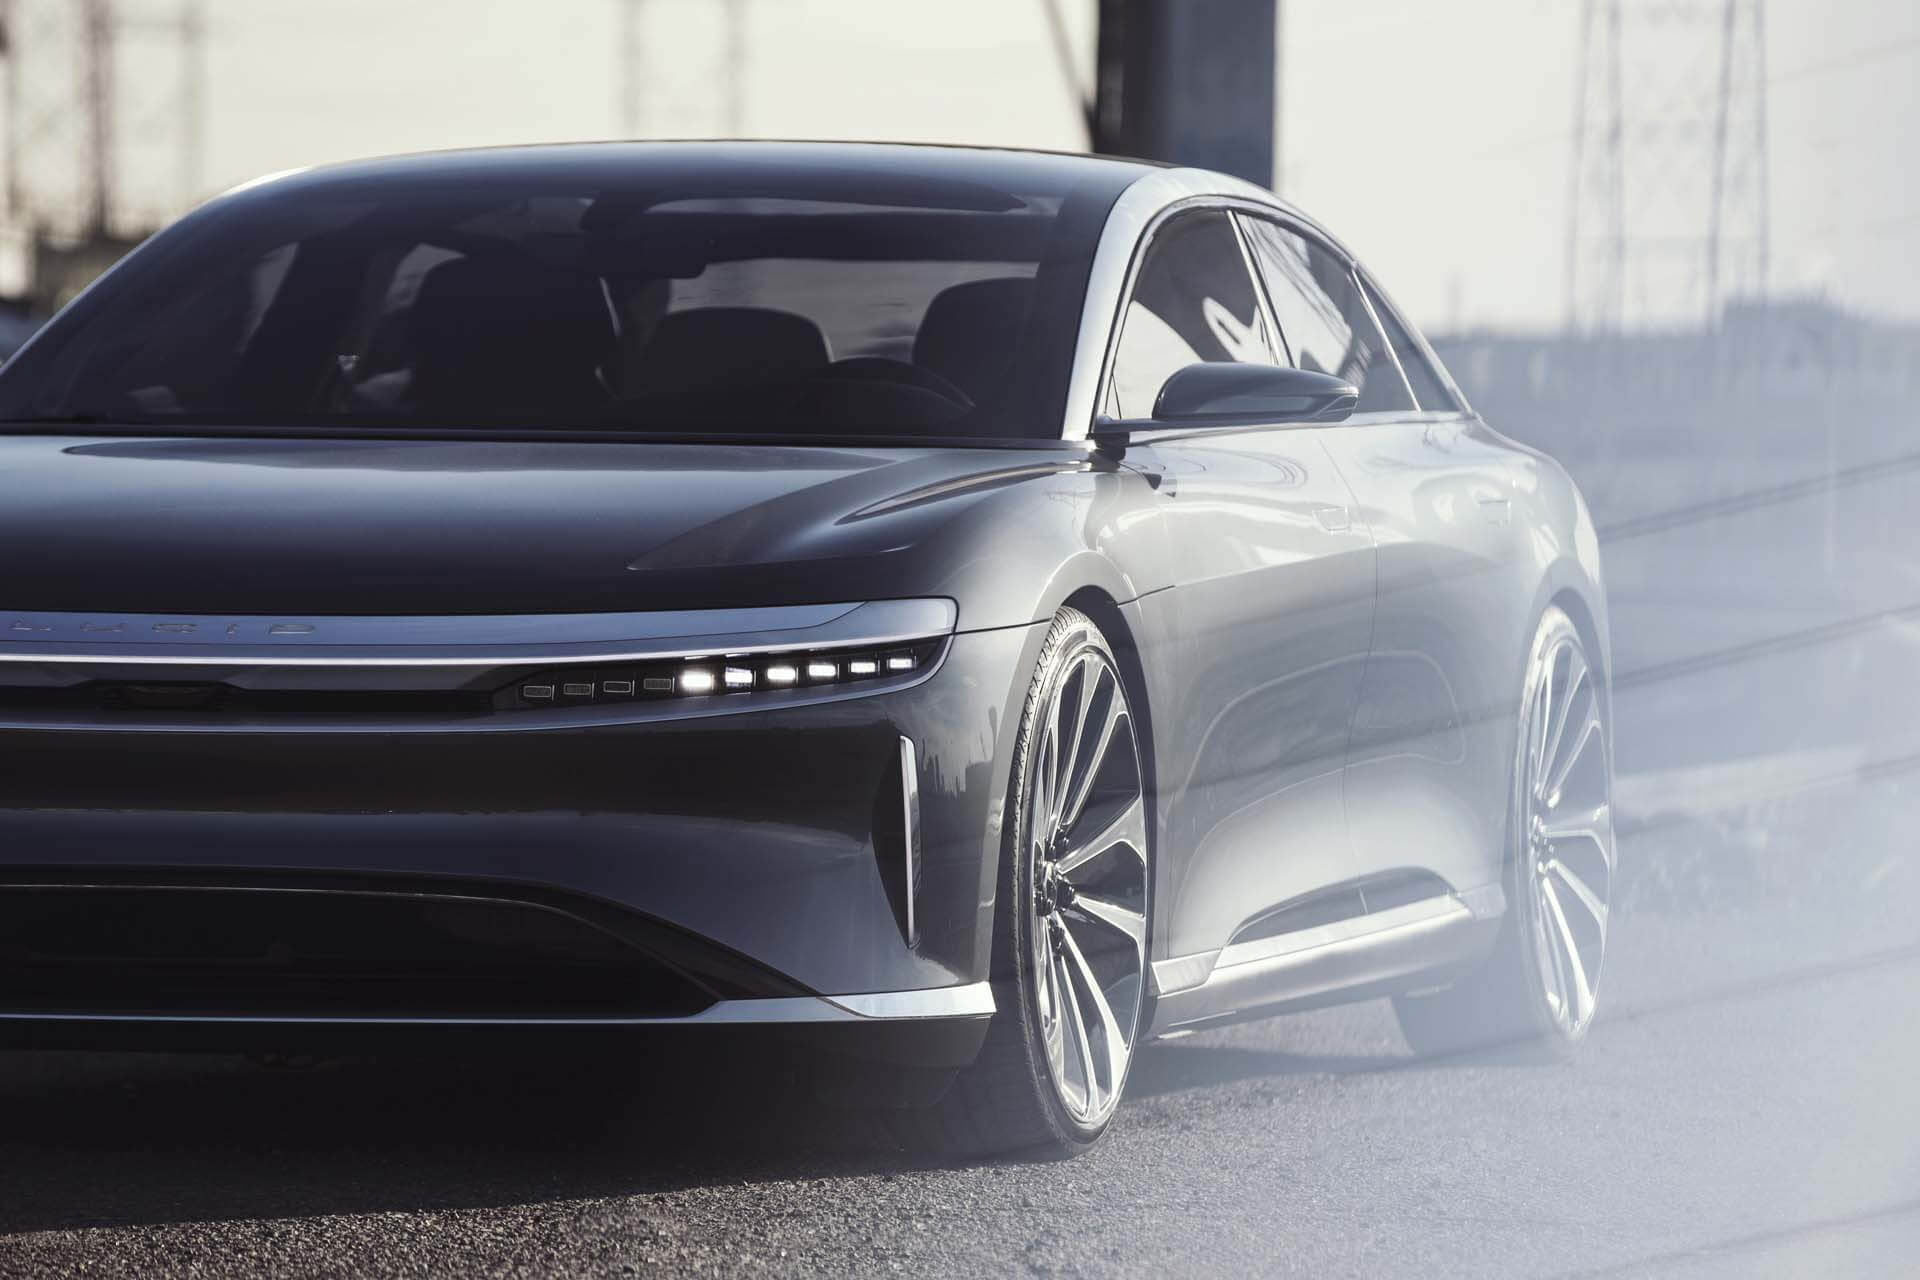 lucid air sedan https://huglero.com